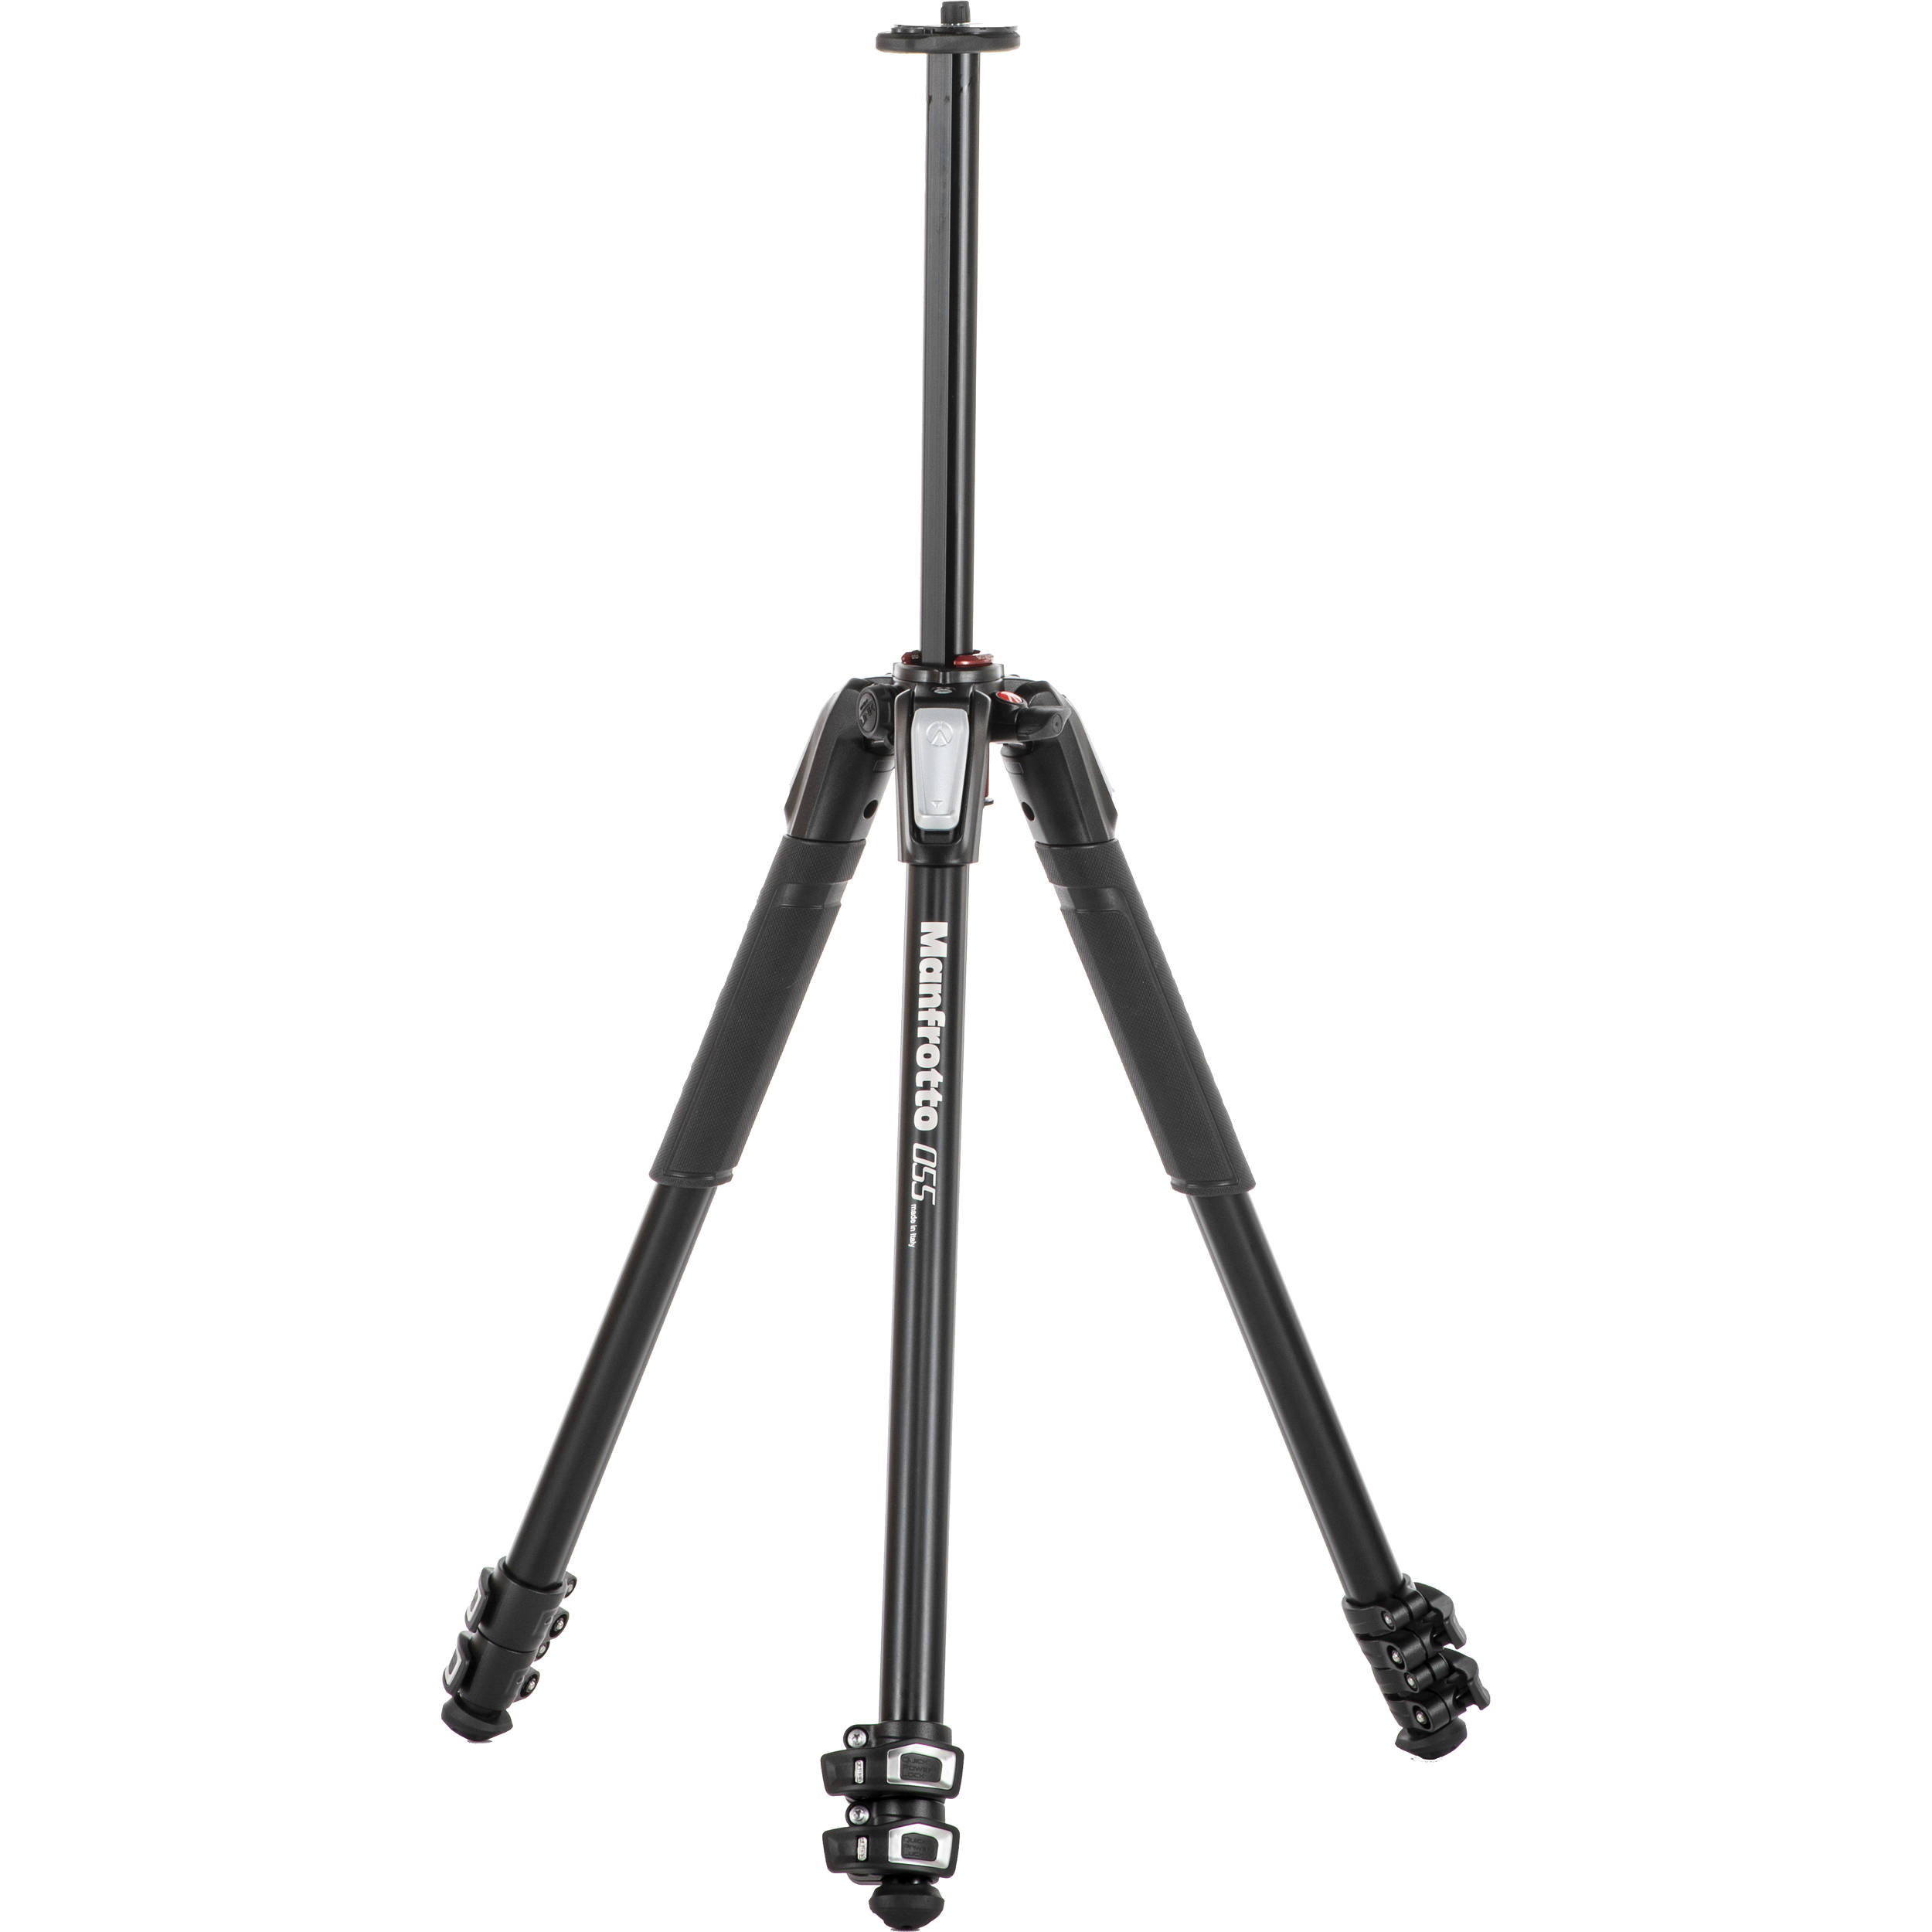 Manfrotto MT055XPRO3 Aluminum Tripod MT055XPRO3 B&H Photo ...